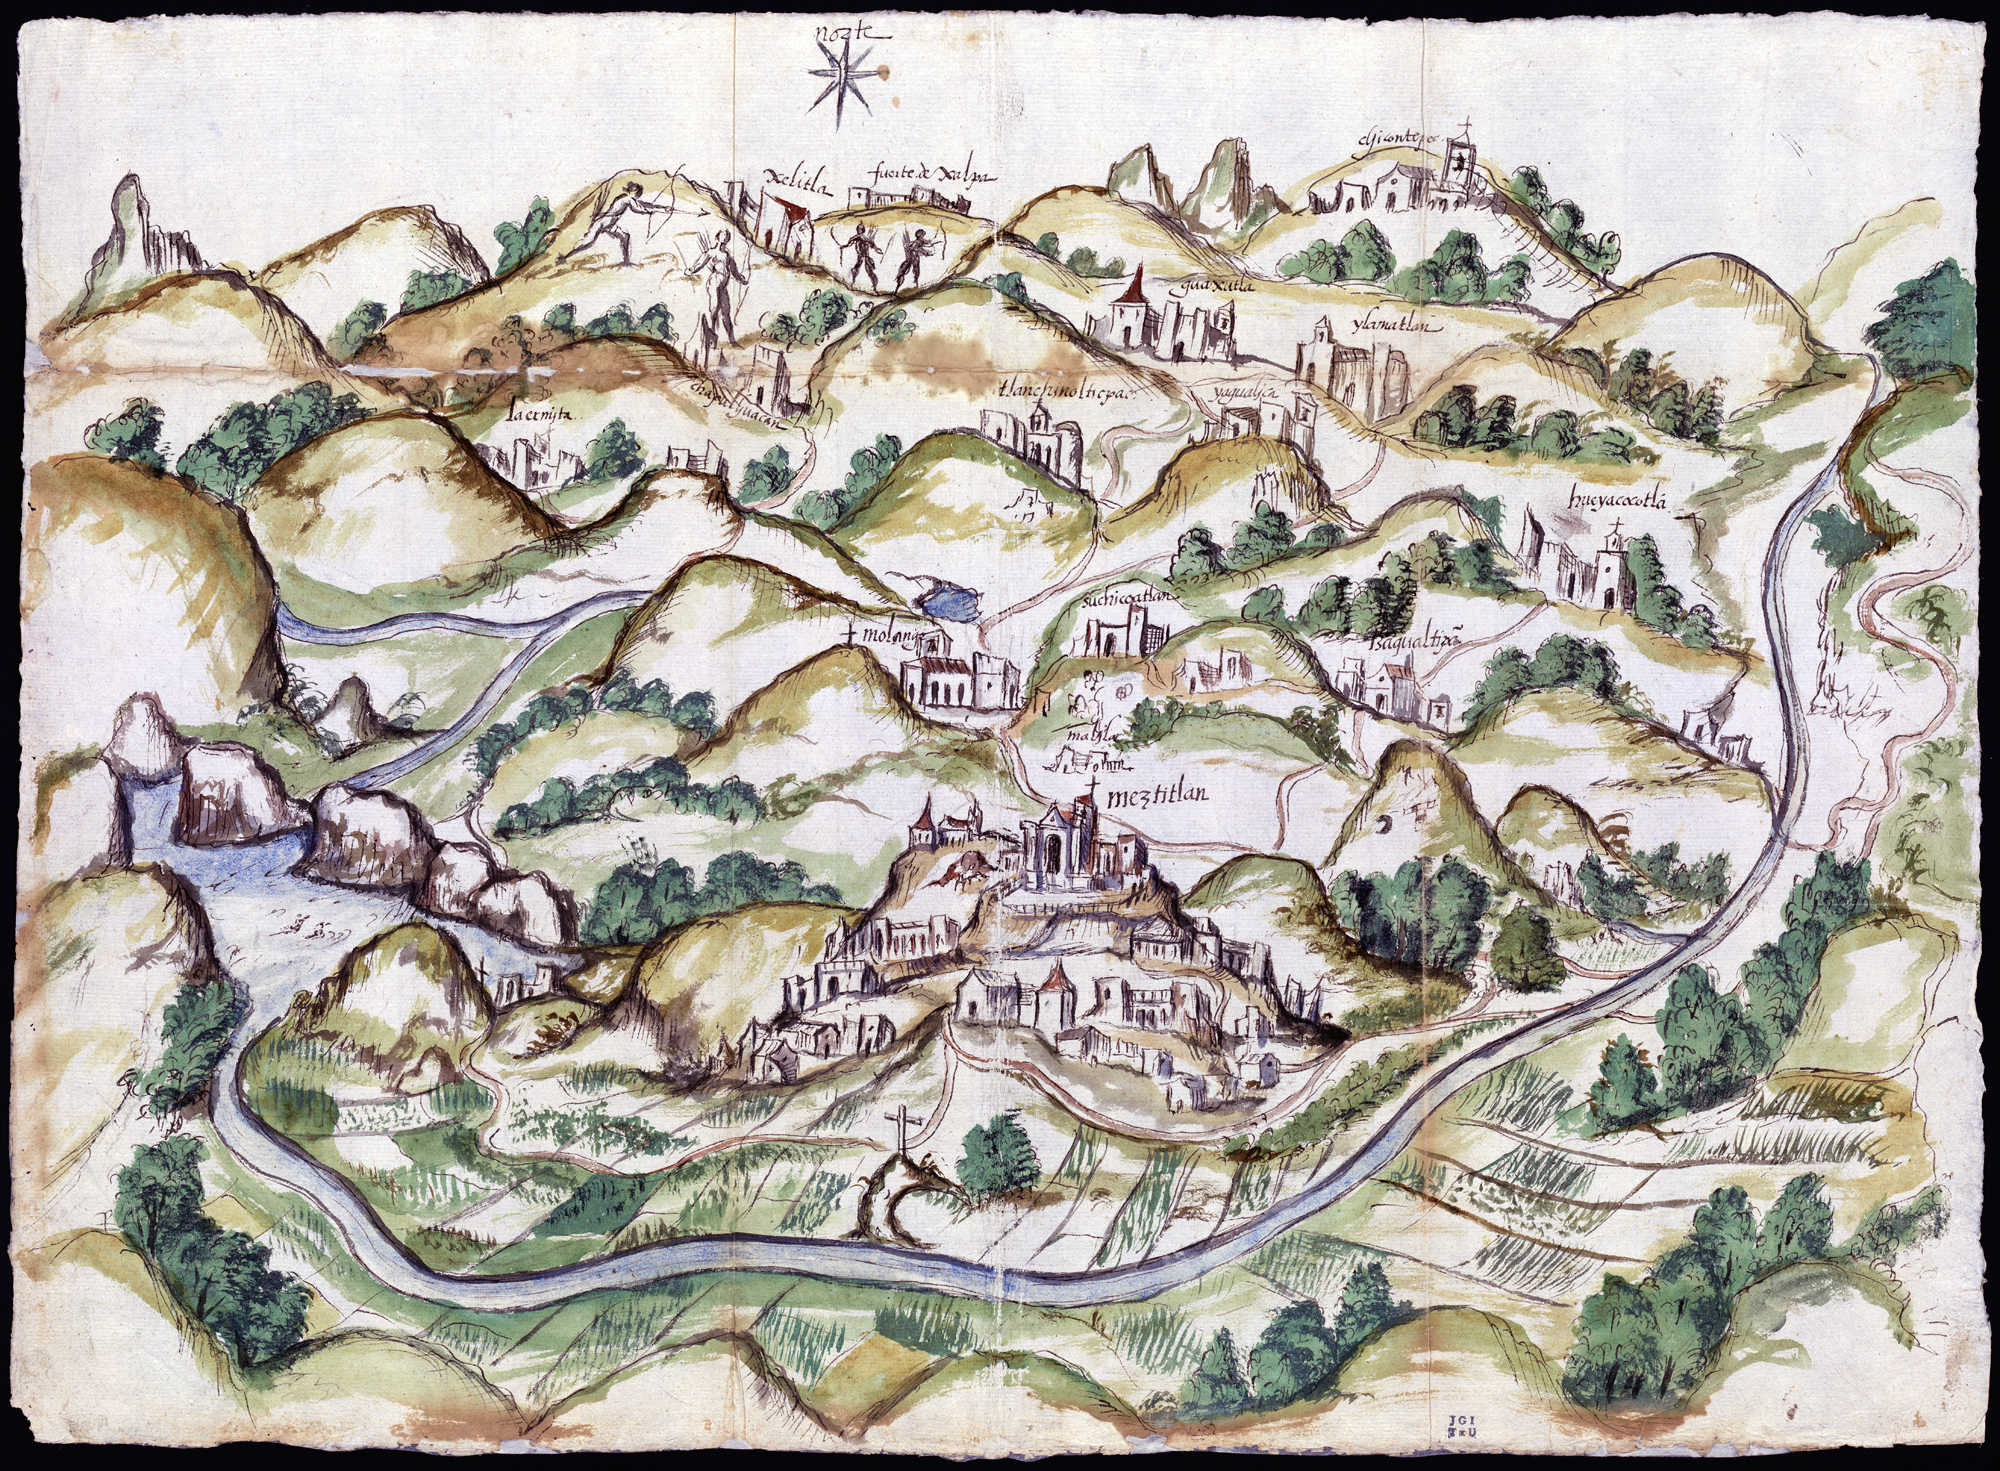 440 Years Old And Filled With Footprints, These Aren't Your Everyday Maps